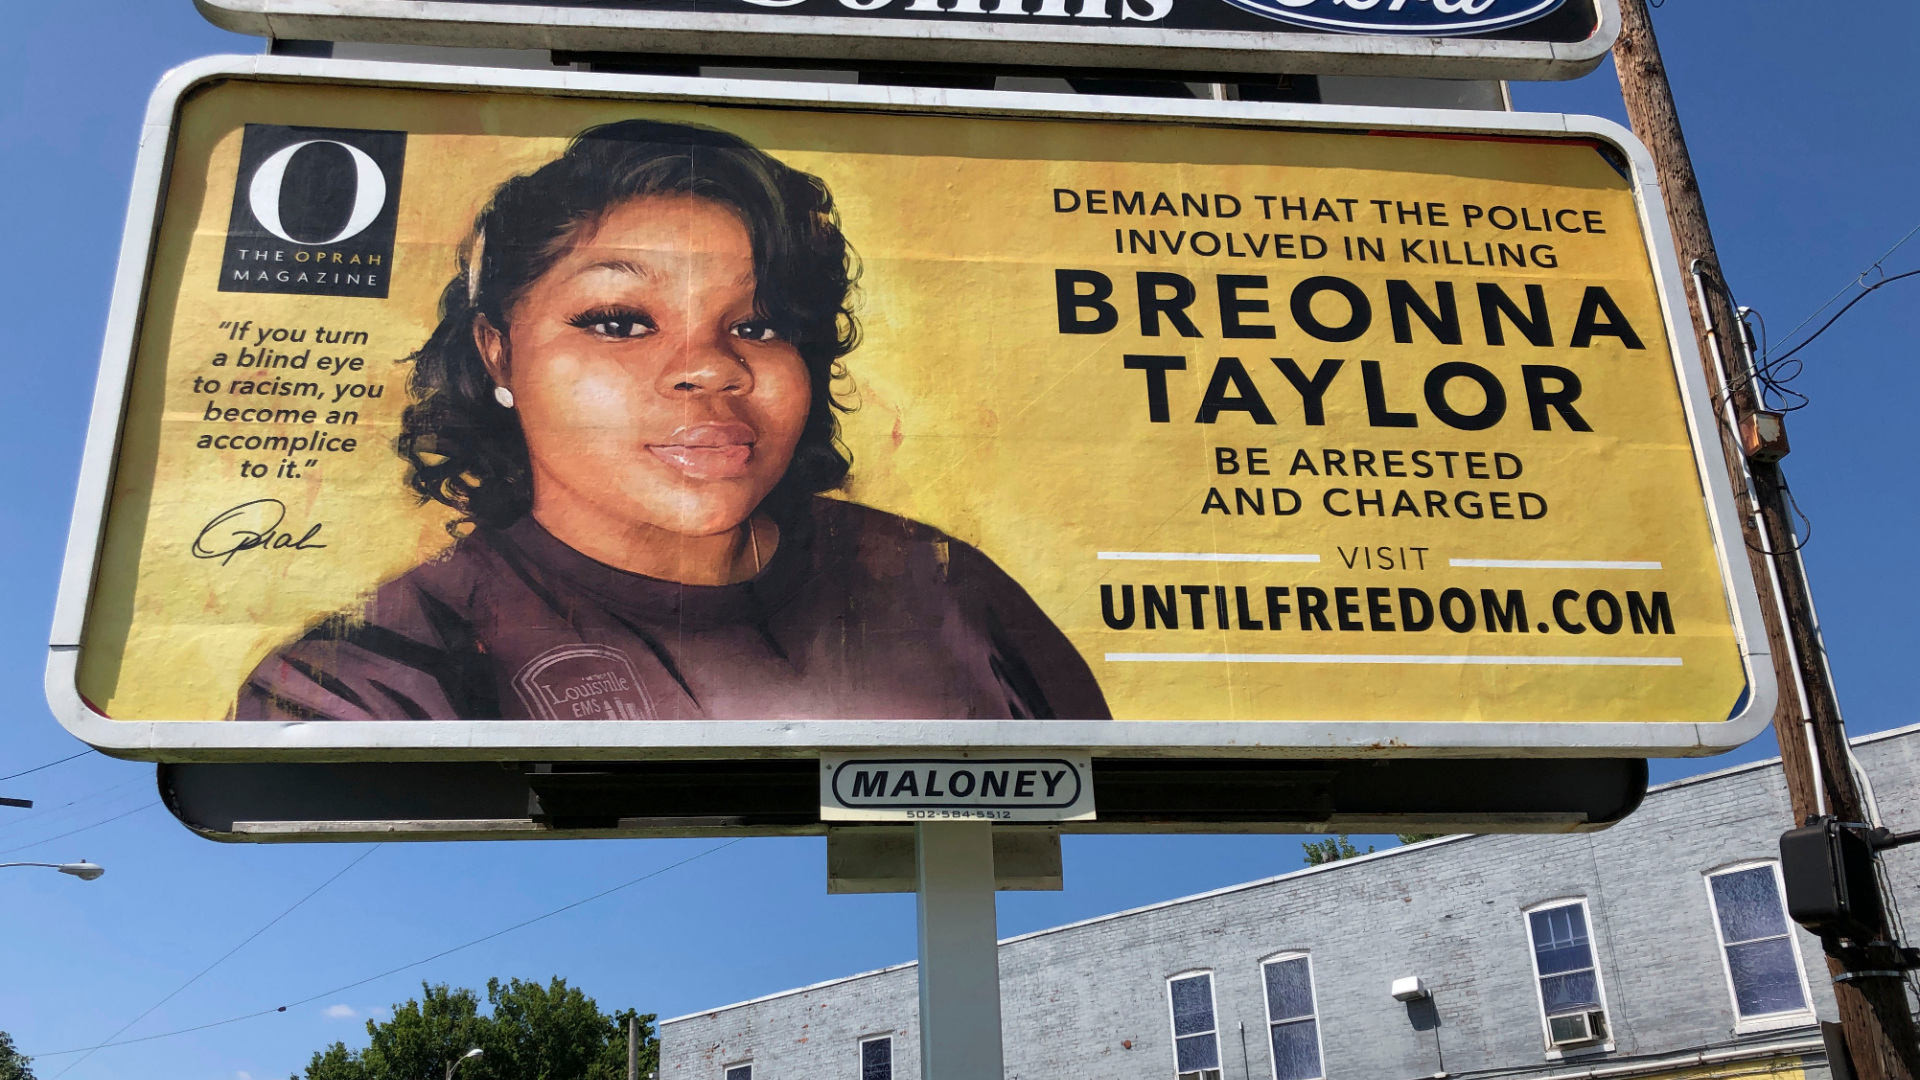 A billboard sponsored by O, The Oprah Magazine, is on display with with a photo of Breonna Taylor on Aug. 7, 2020, in Louisville, Kentucky. (Dylan T. Lovan / Associated Press)